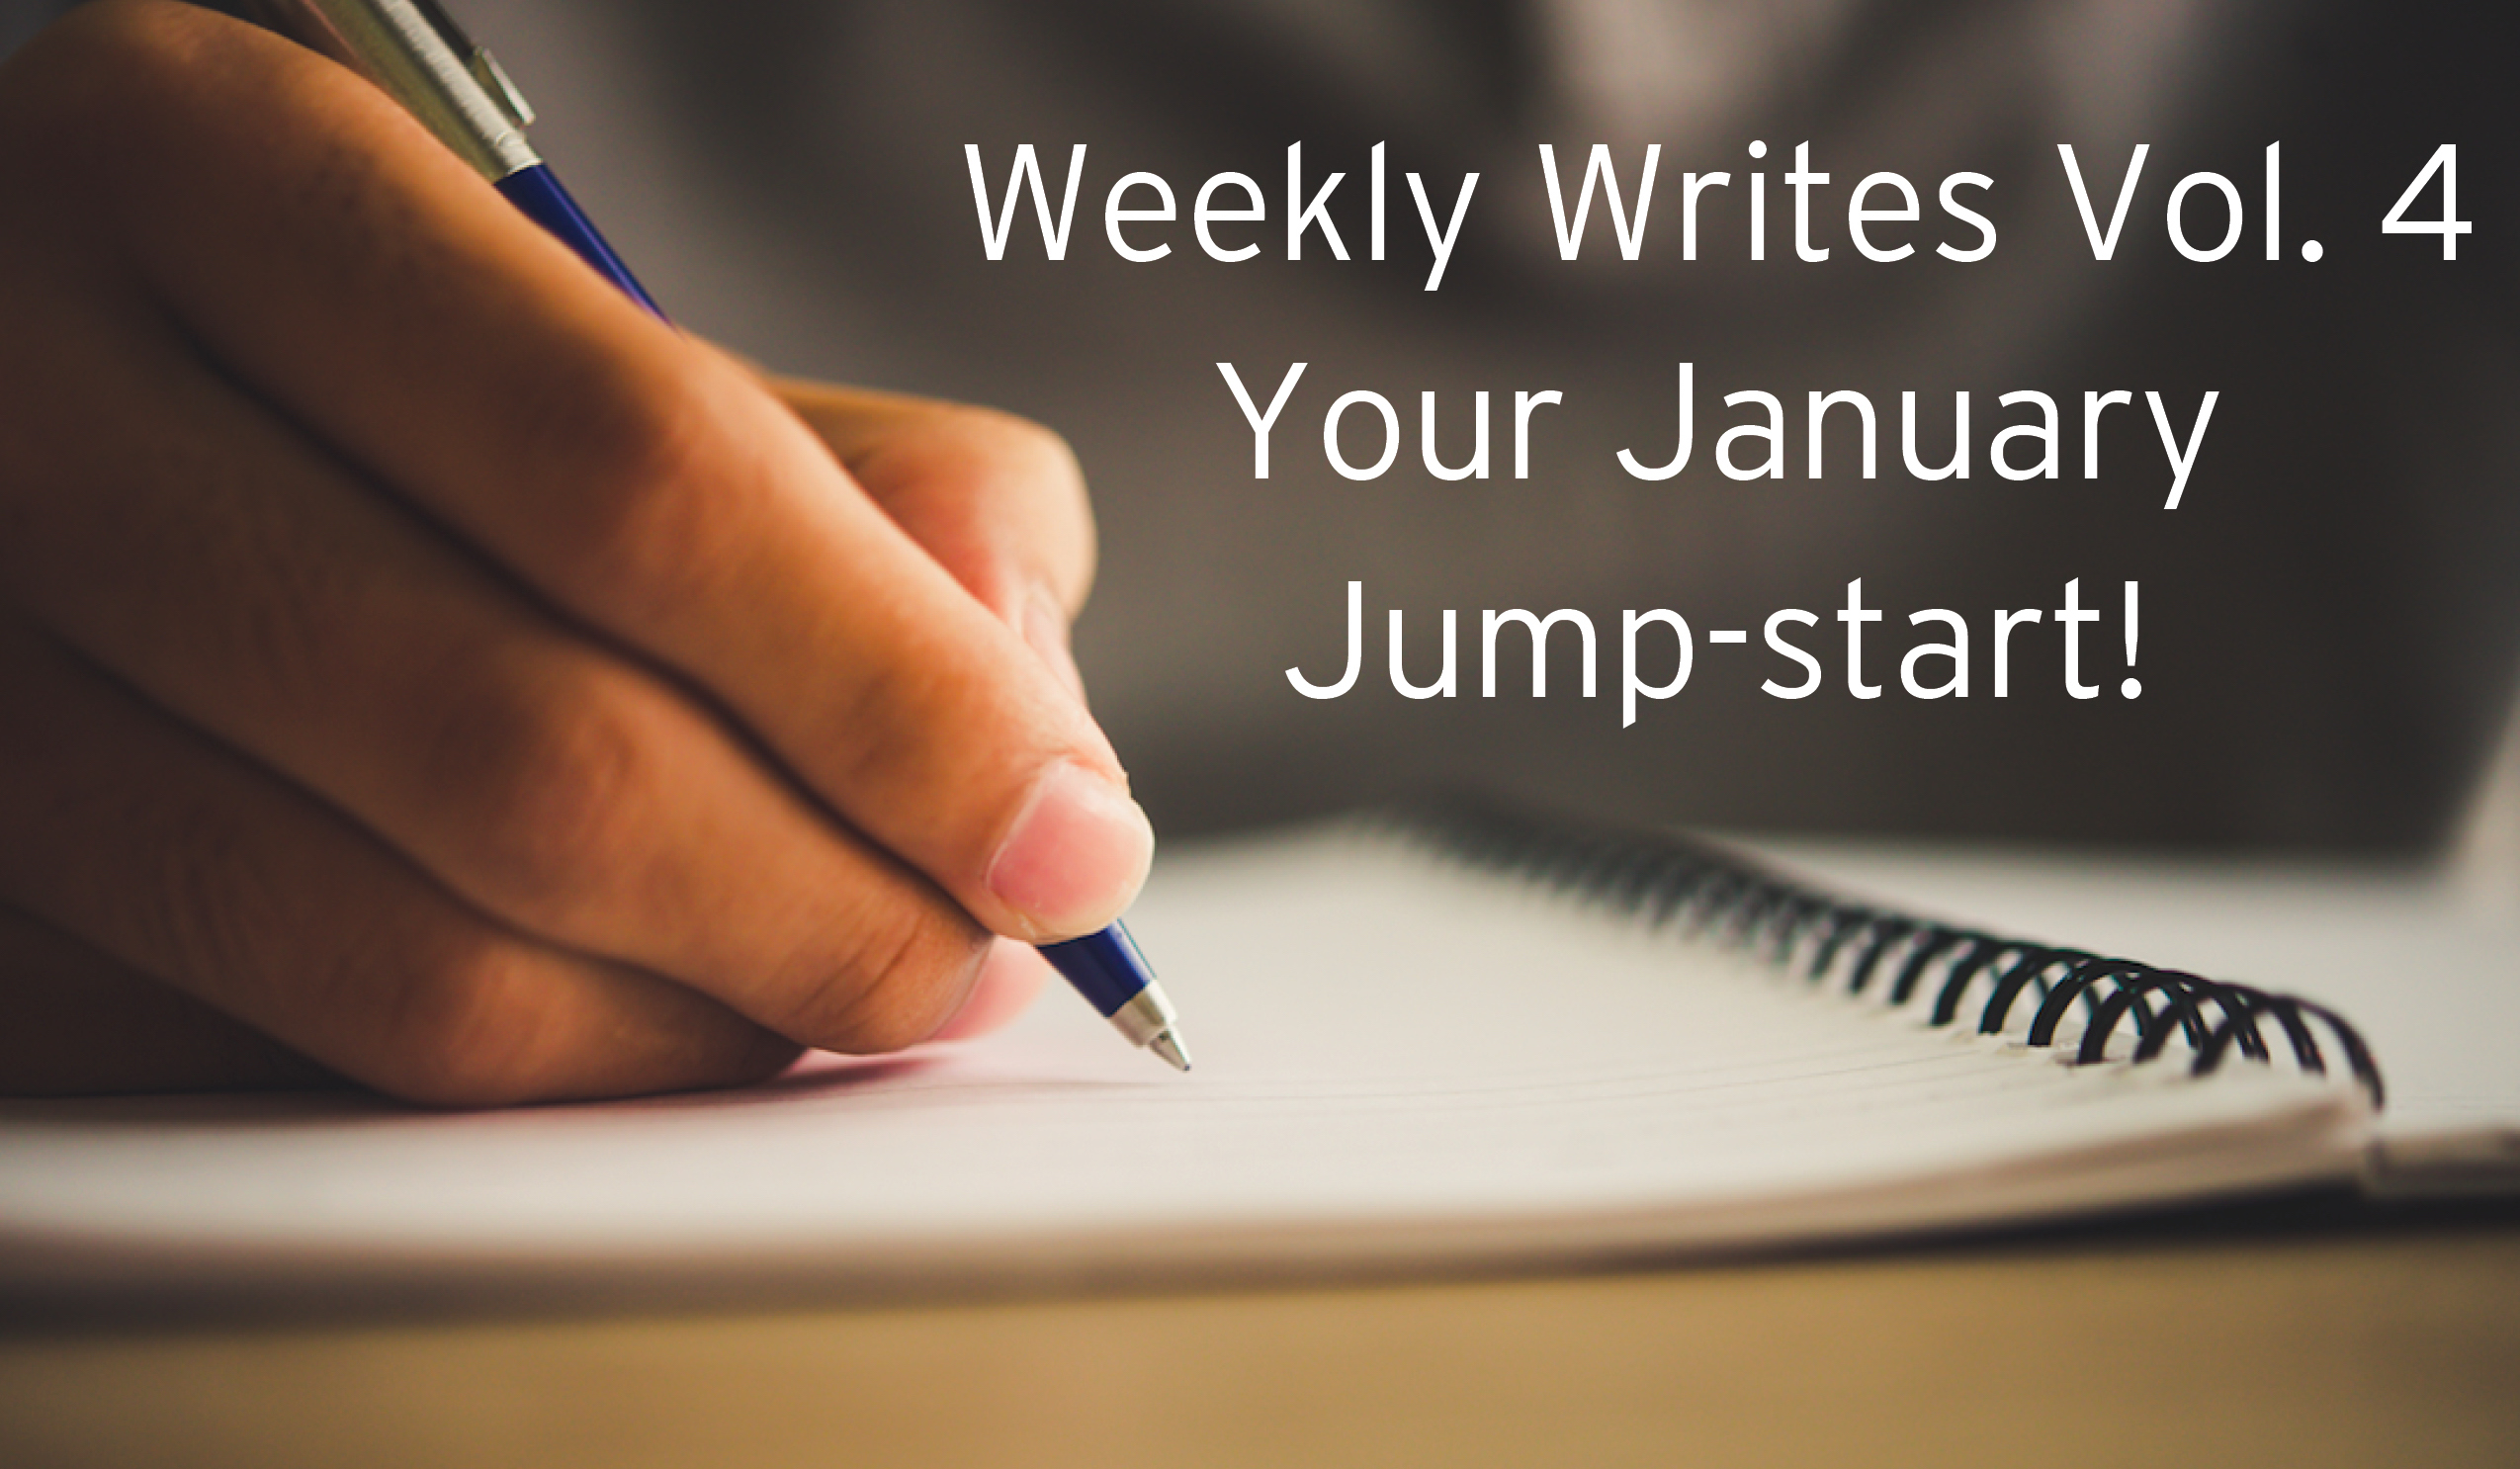 Weekly Writes vol 4